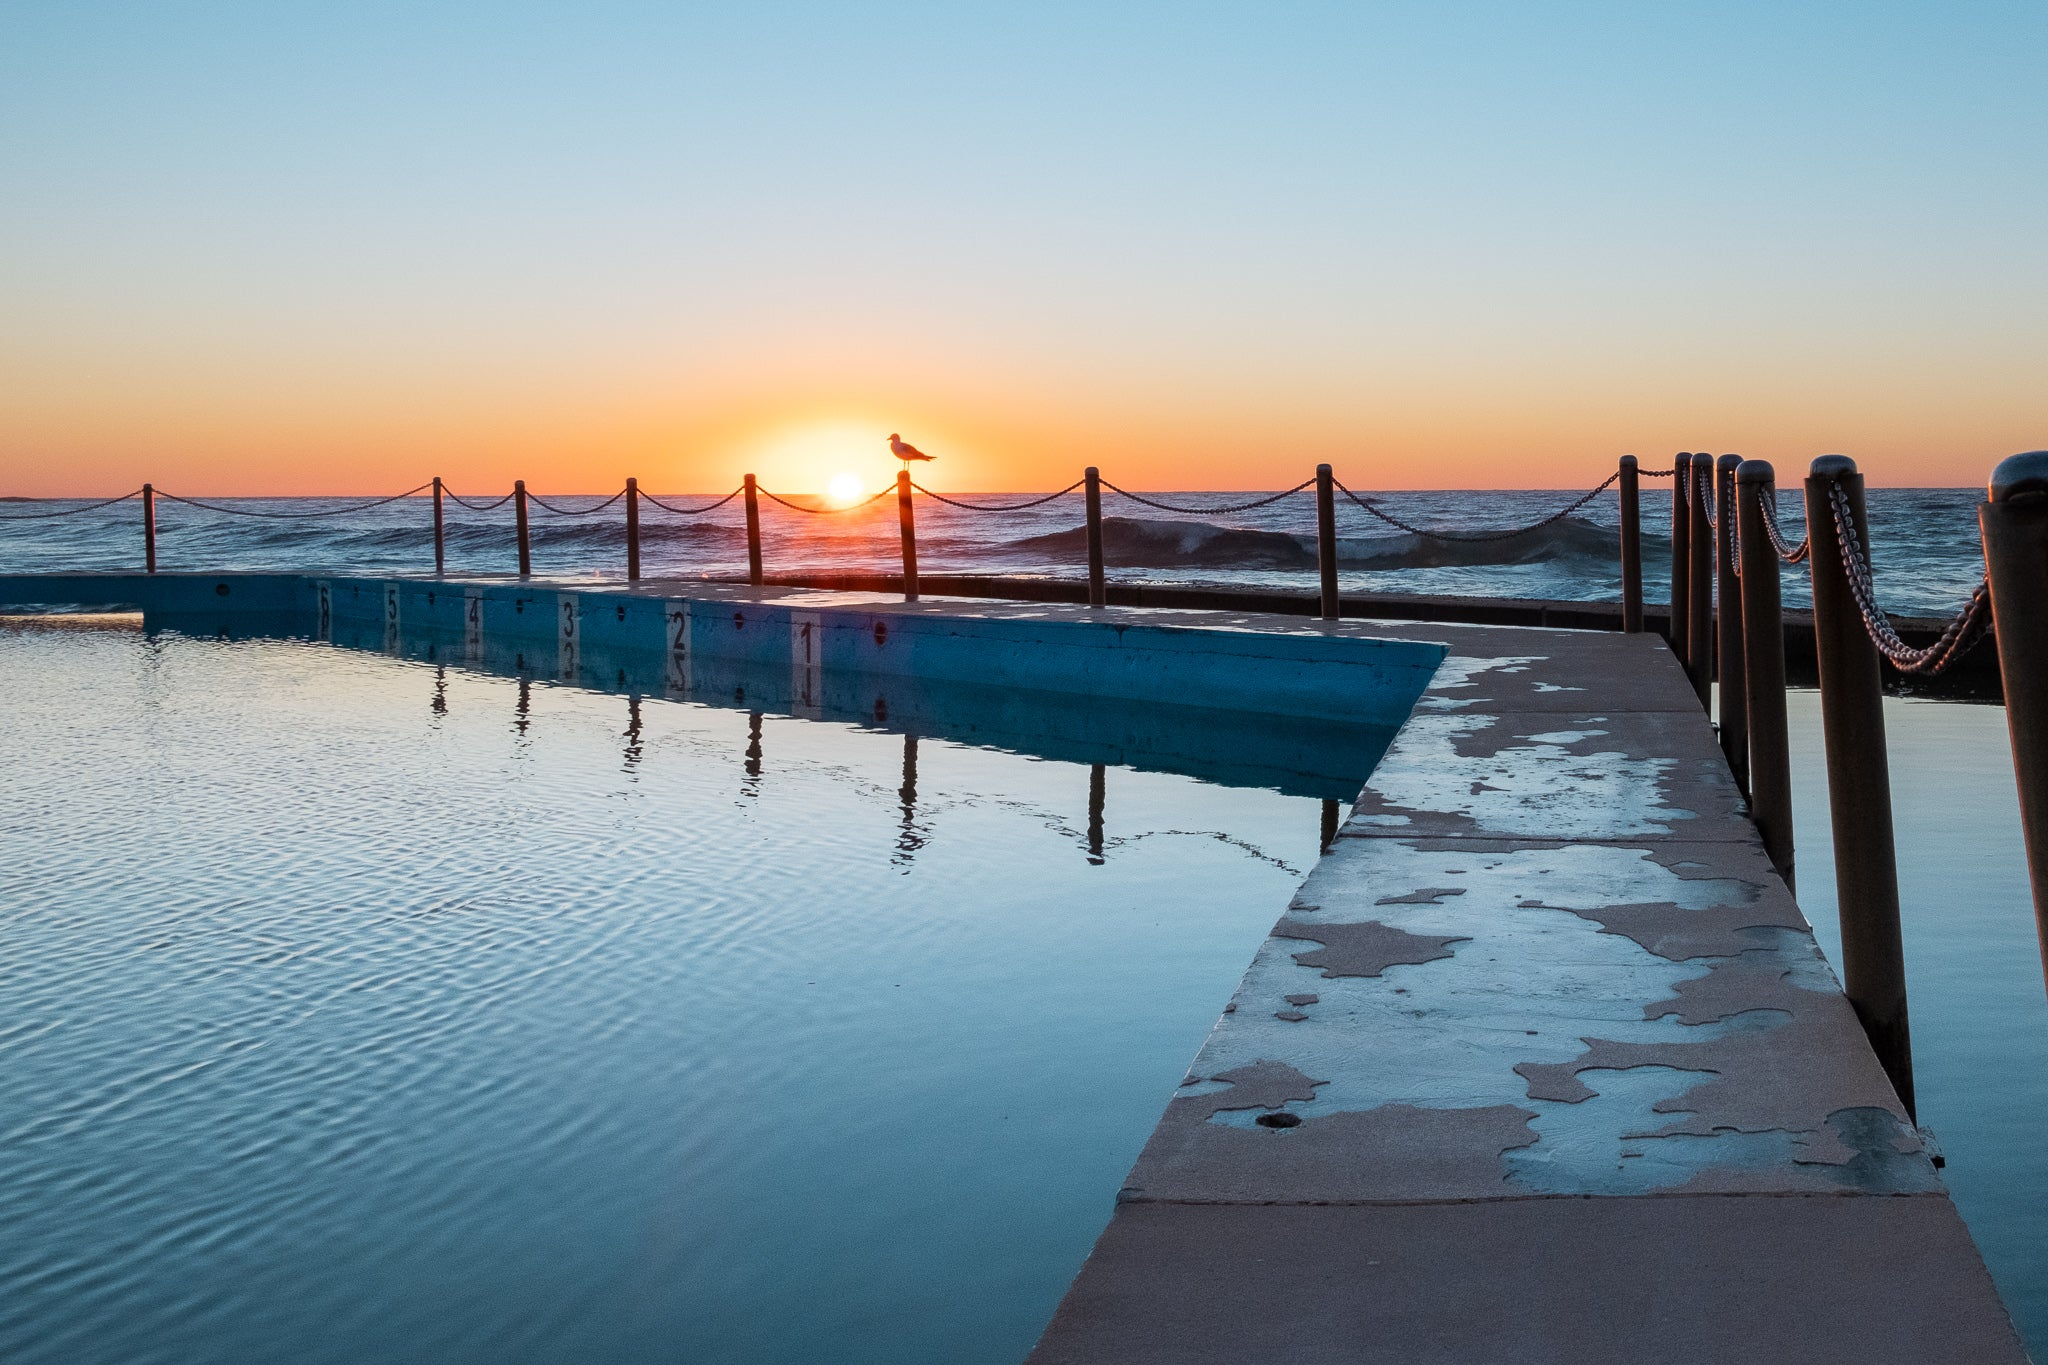 Sunrise photo from the 21st July 2019 at Curl Curl Rock Pool in Sydney